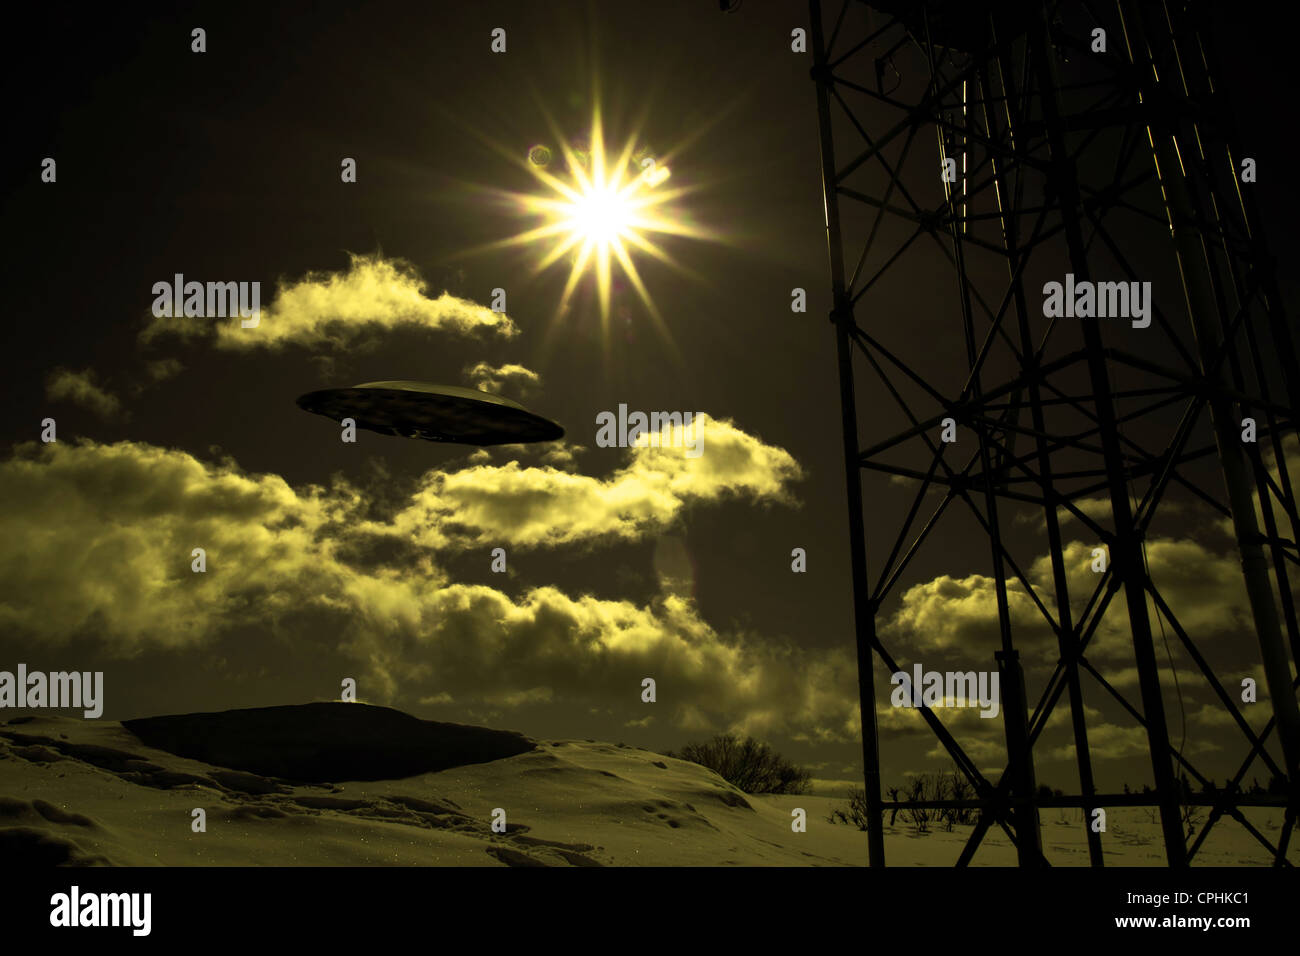 UFO in the sky near a communications tower with weird lighting. - Stock Image